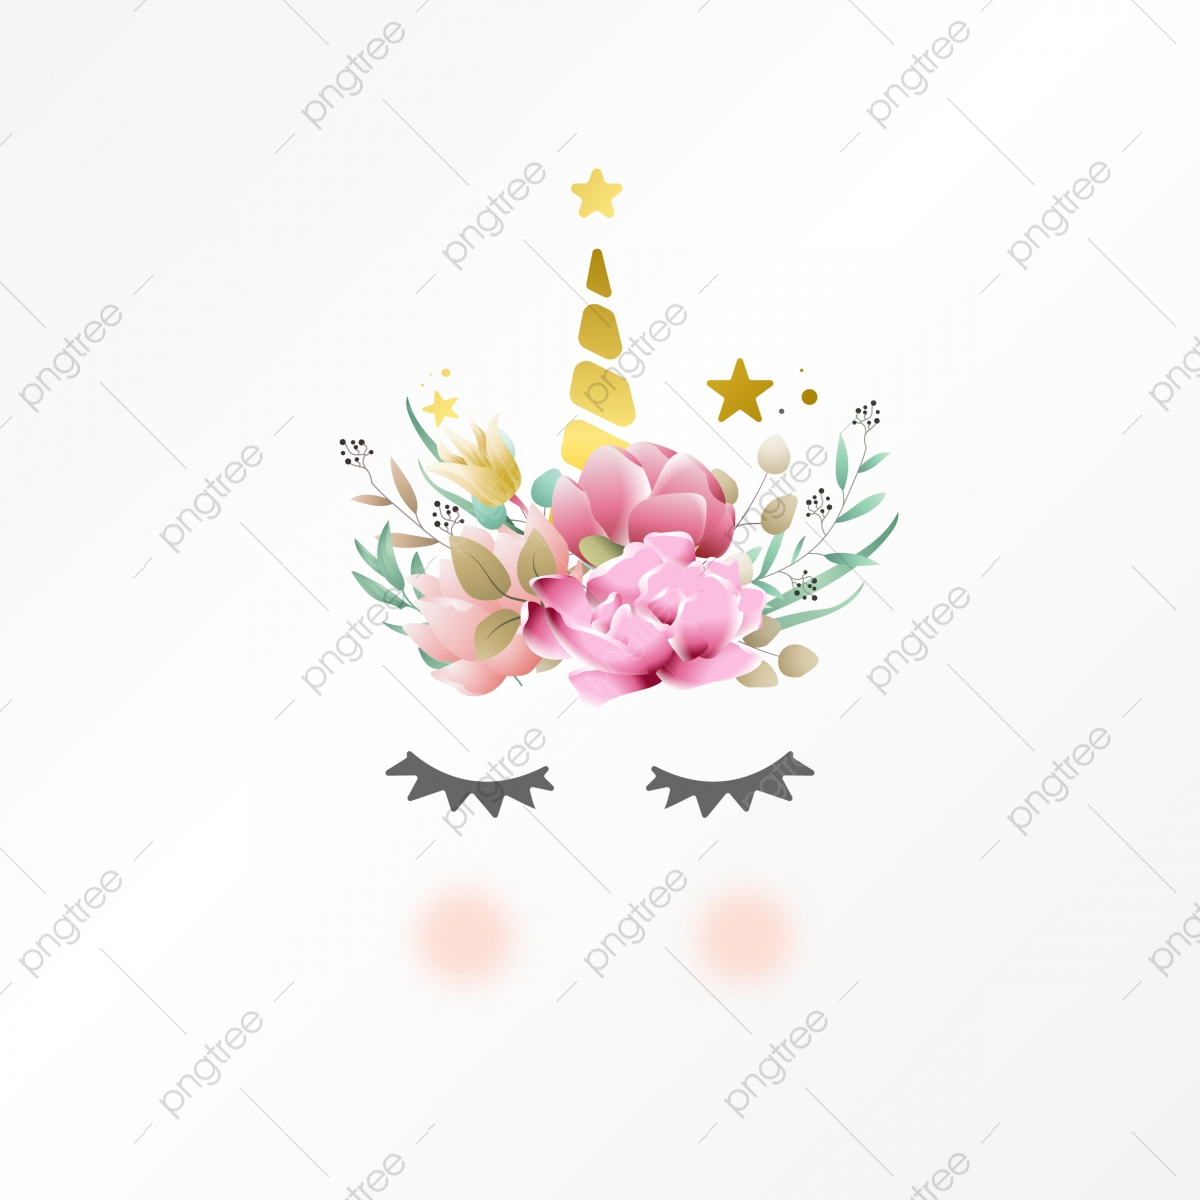 pngtree cute unicorn graphic with flowers wreath png image